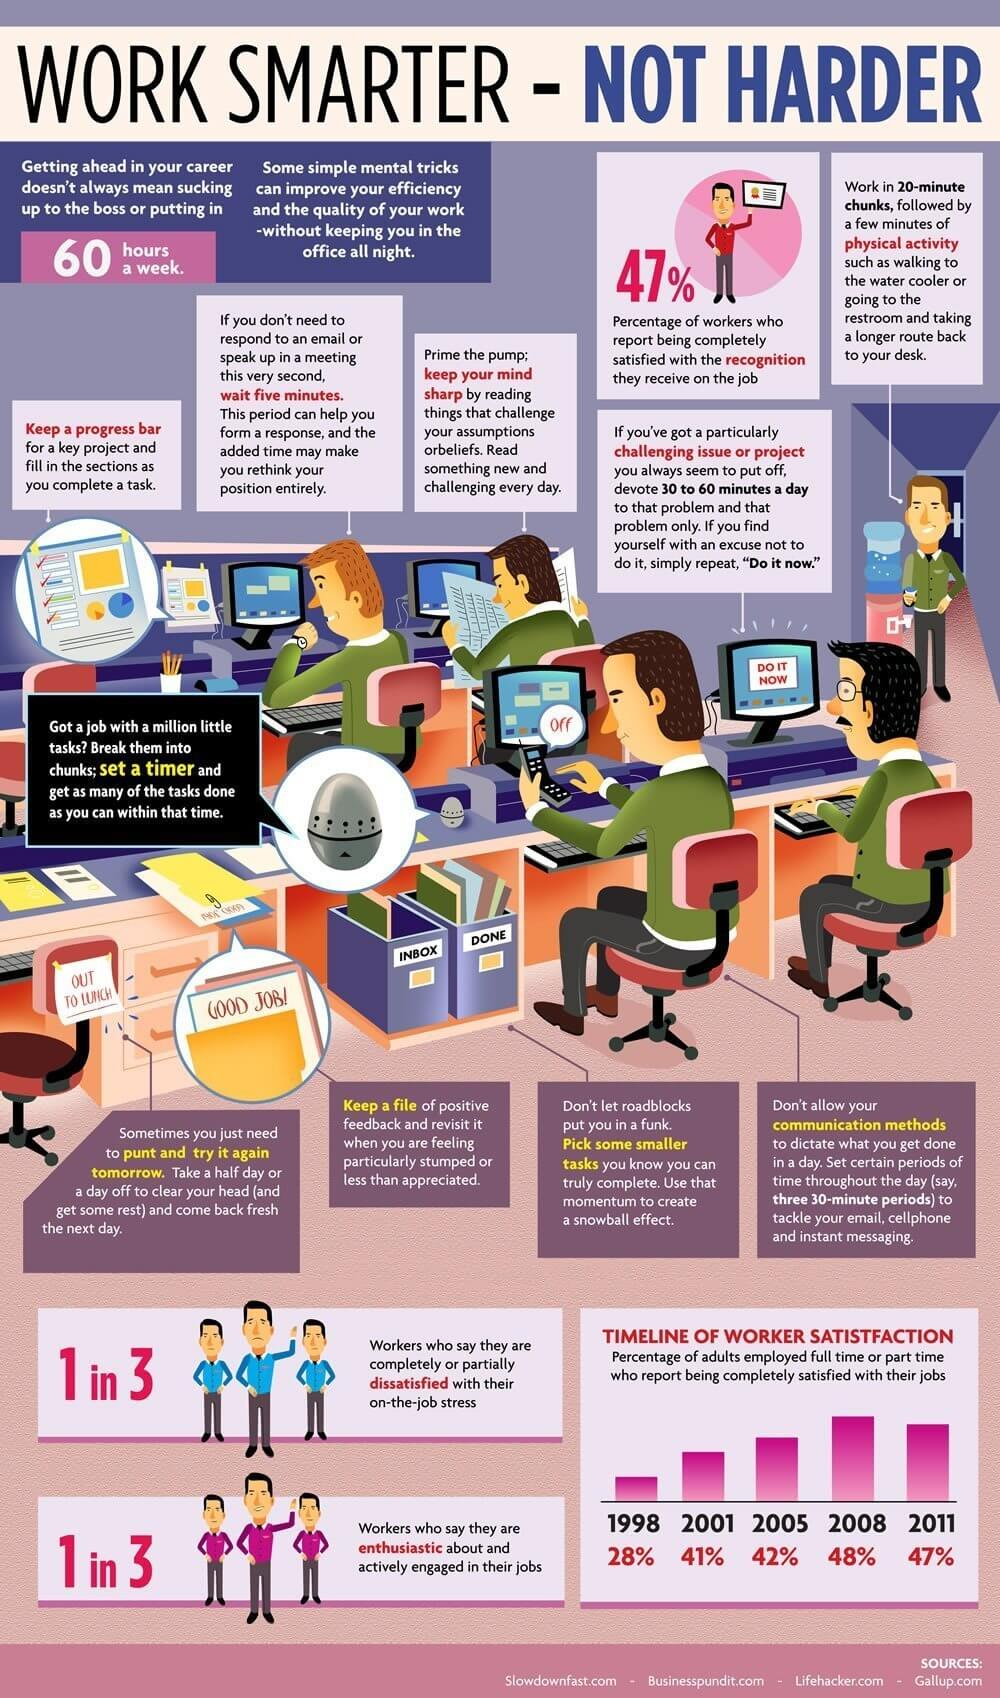 work smarter PR Pros, Are You Working Harder Or Smarter? [Infographic]